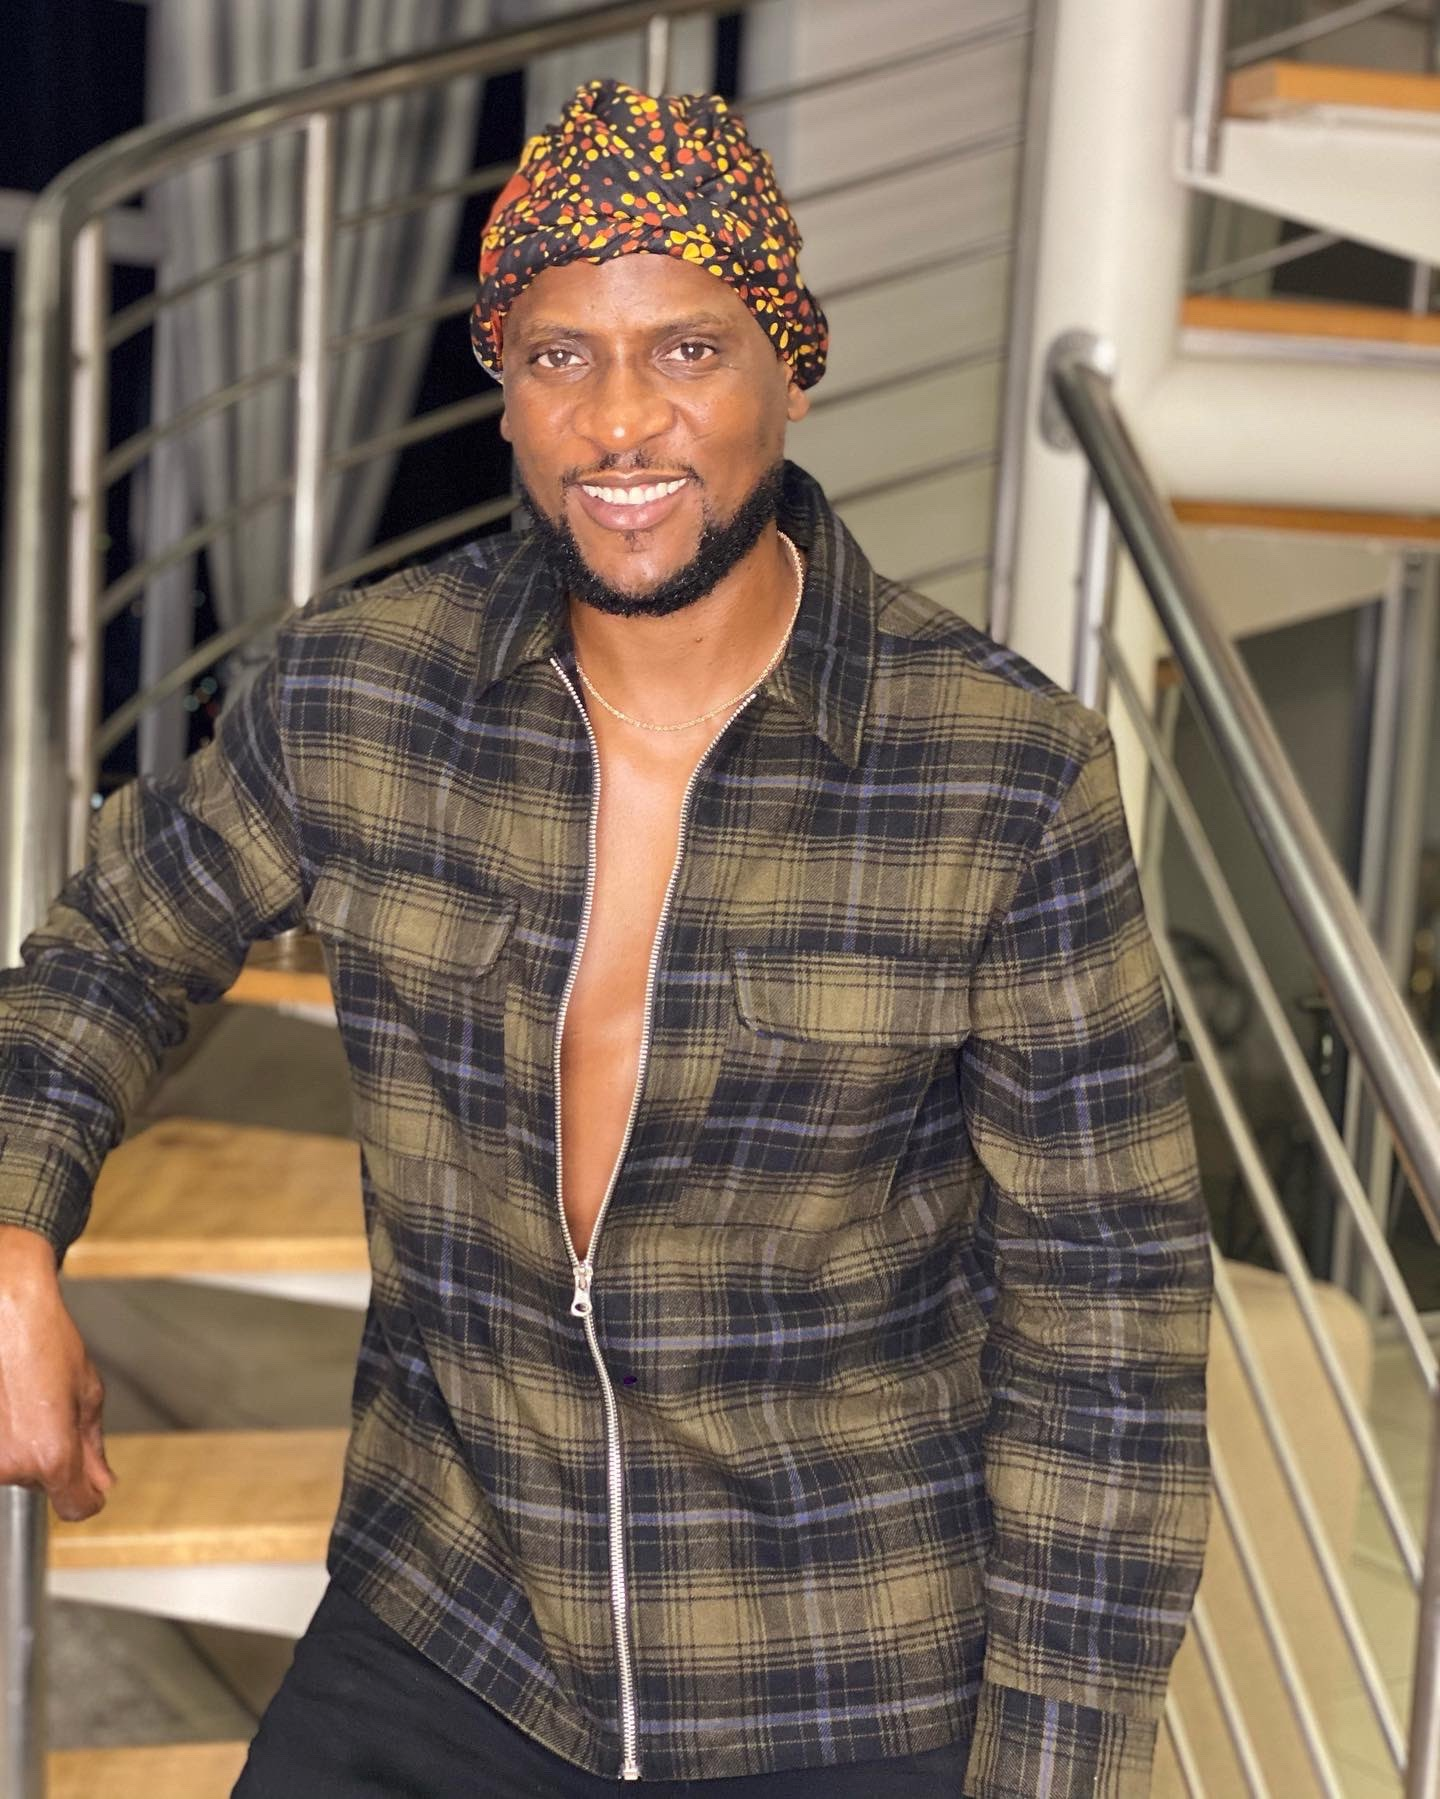 'Sometimes your soulmate is your money. Stop forcing relationships' – BBNaija star, Omashola